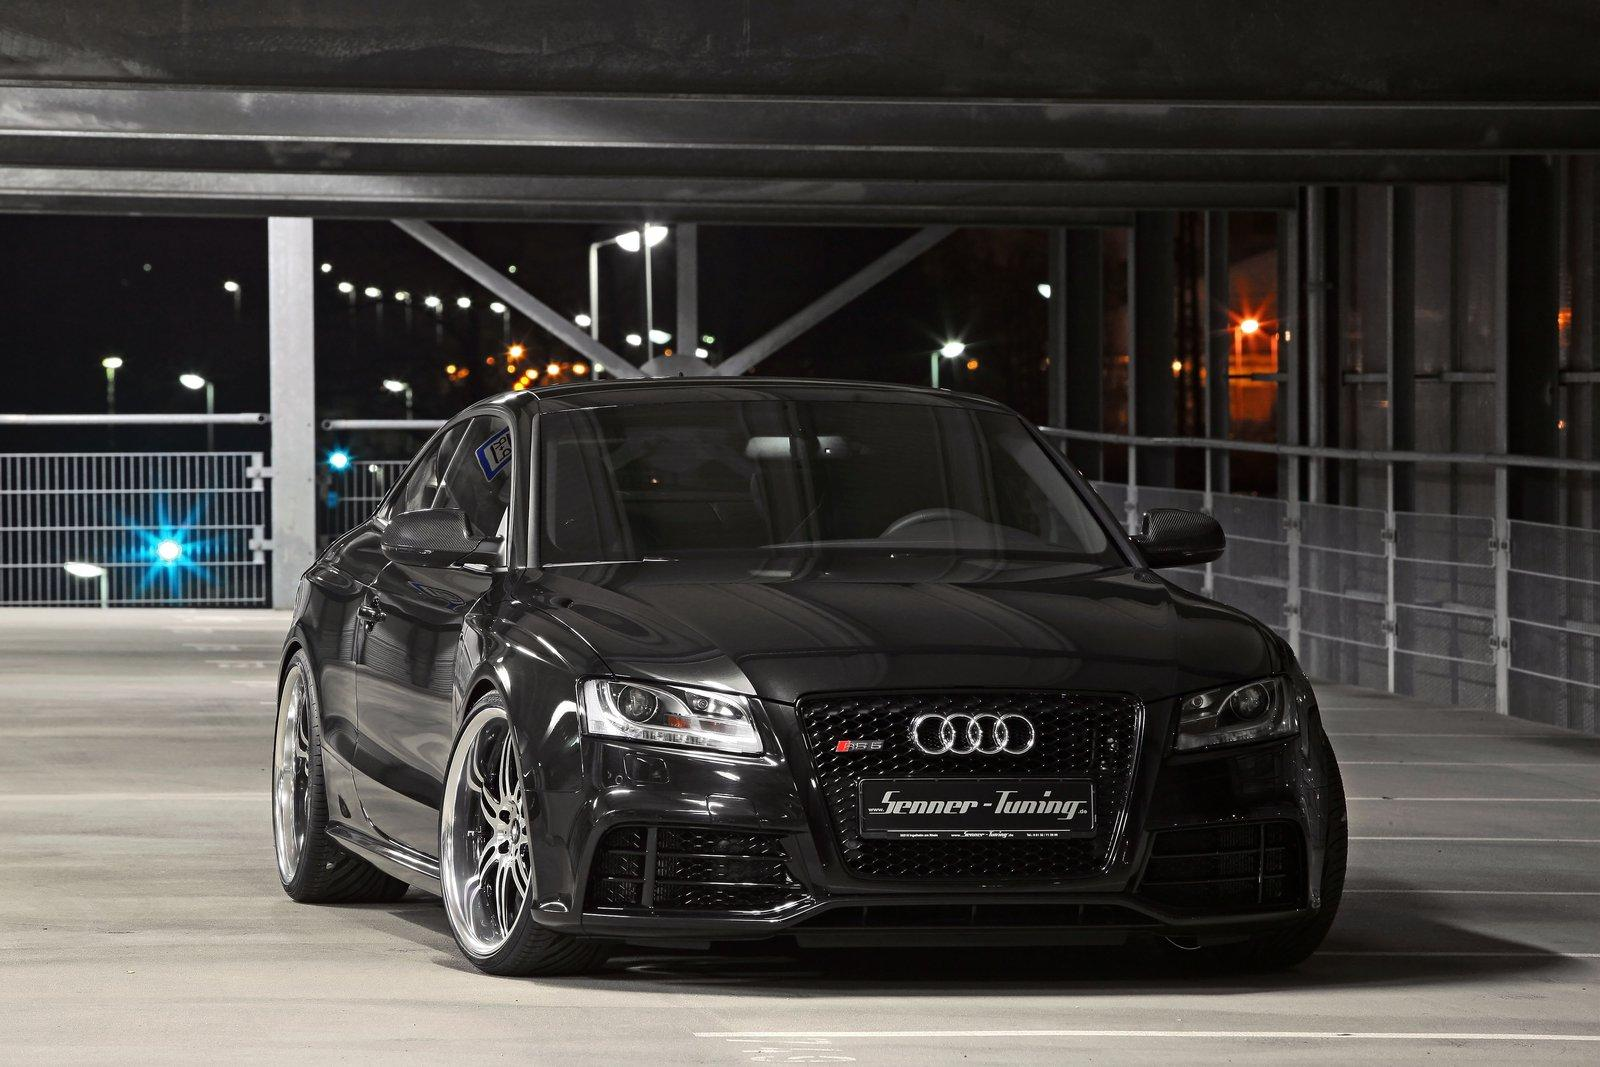 Senner Tuning Audi Rs5 Picture 46729